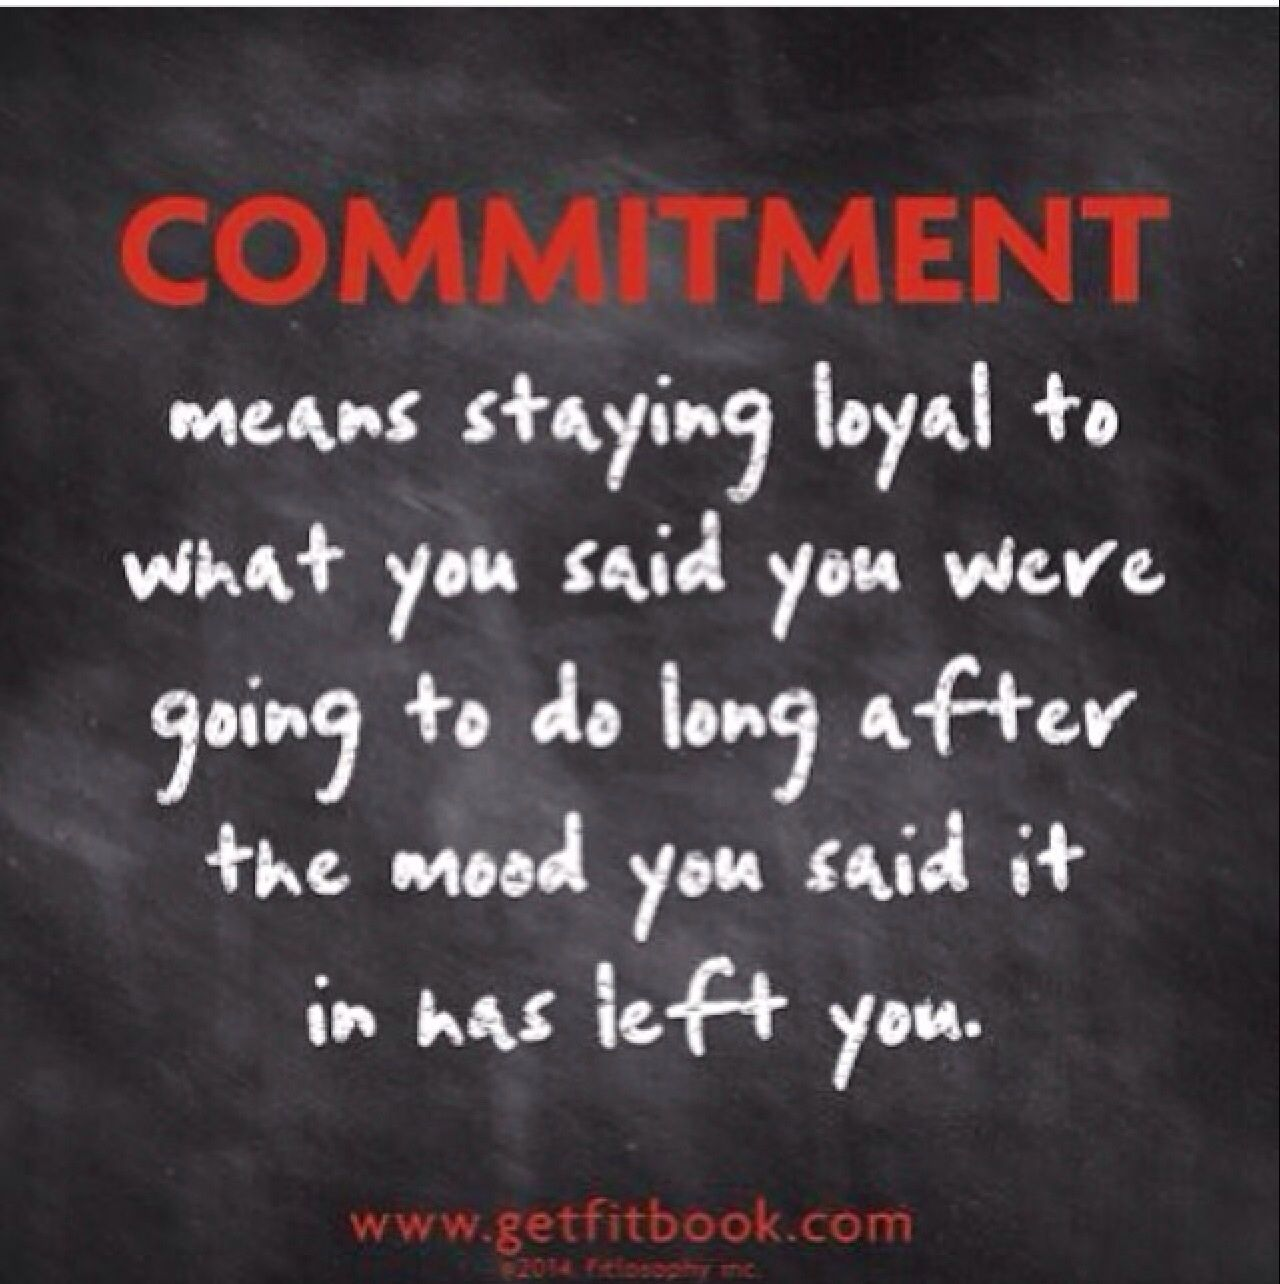 Are you afraid of commitment